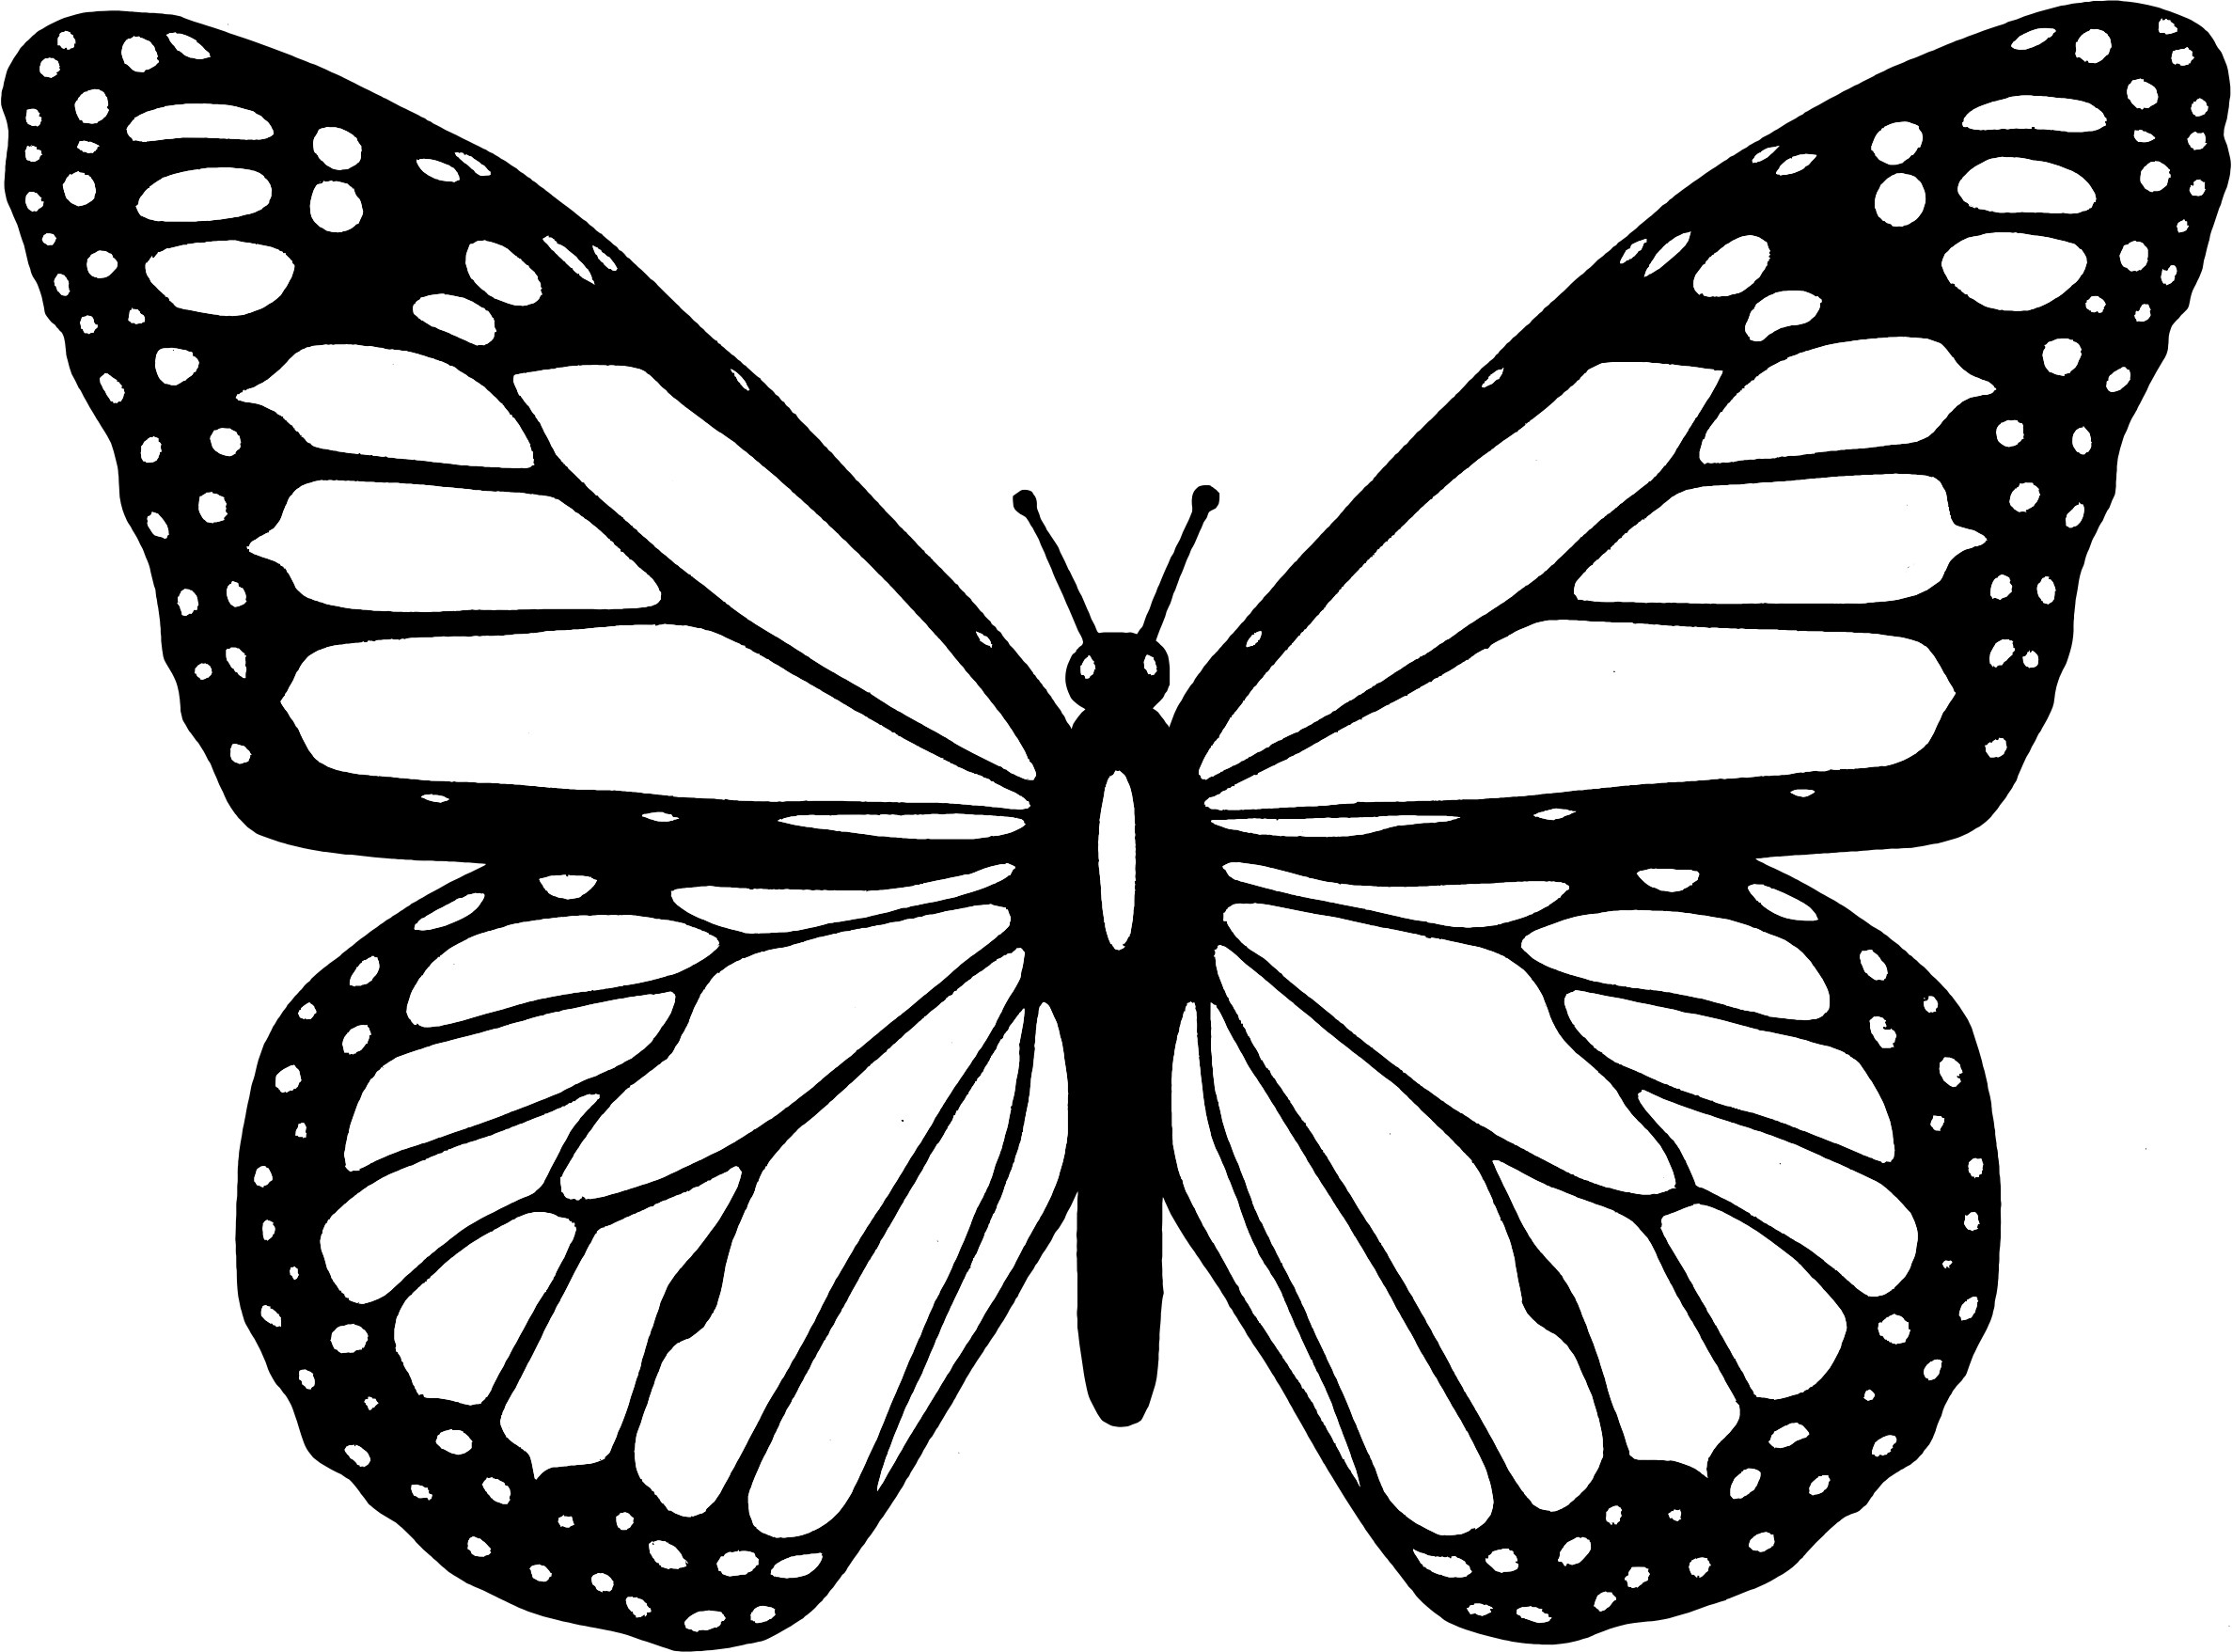 monarch butterfly coloring page monarch butterfly coloring page high quality coloring butterfly page coloring monarch